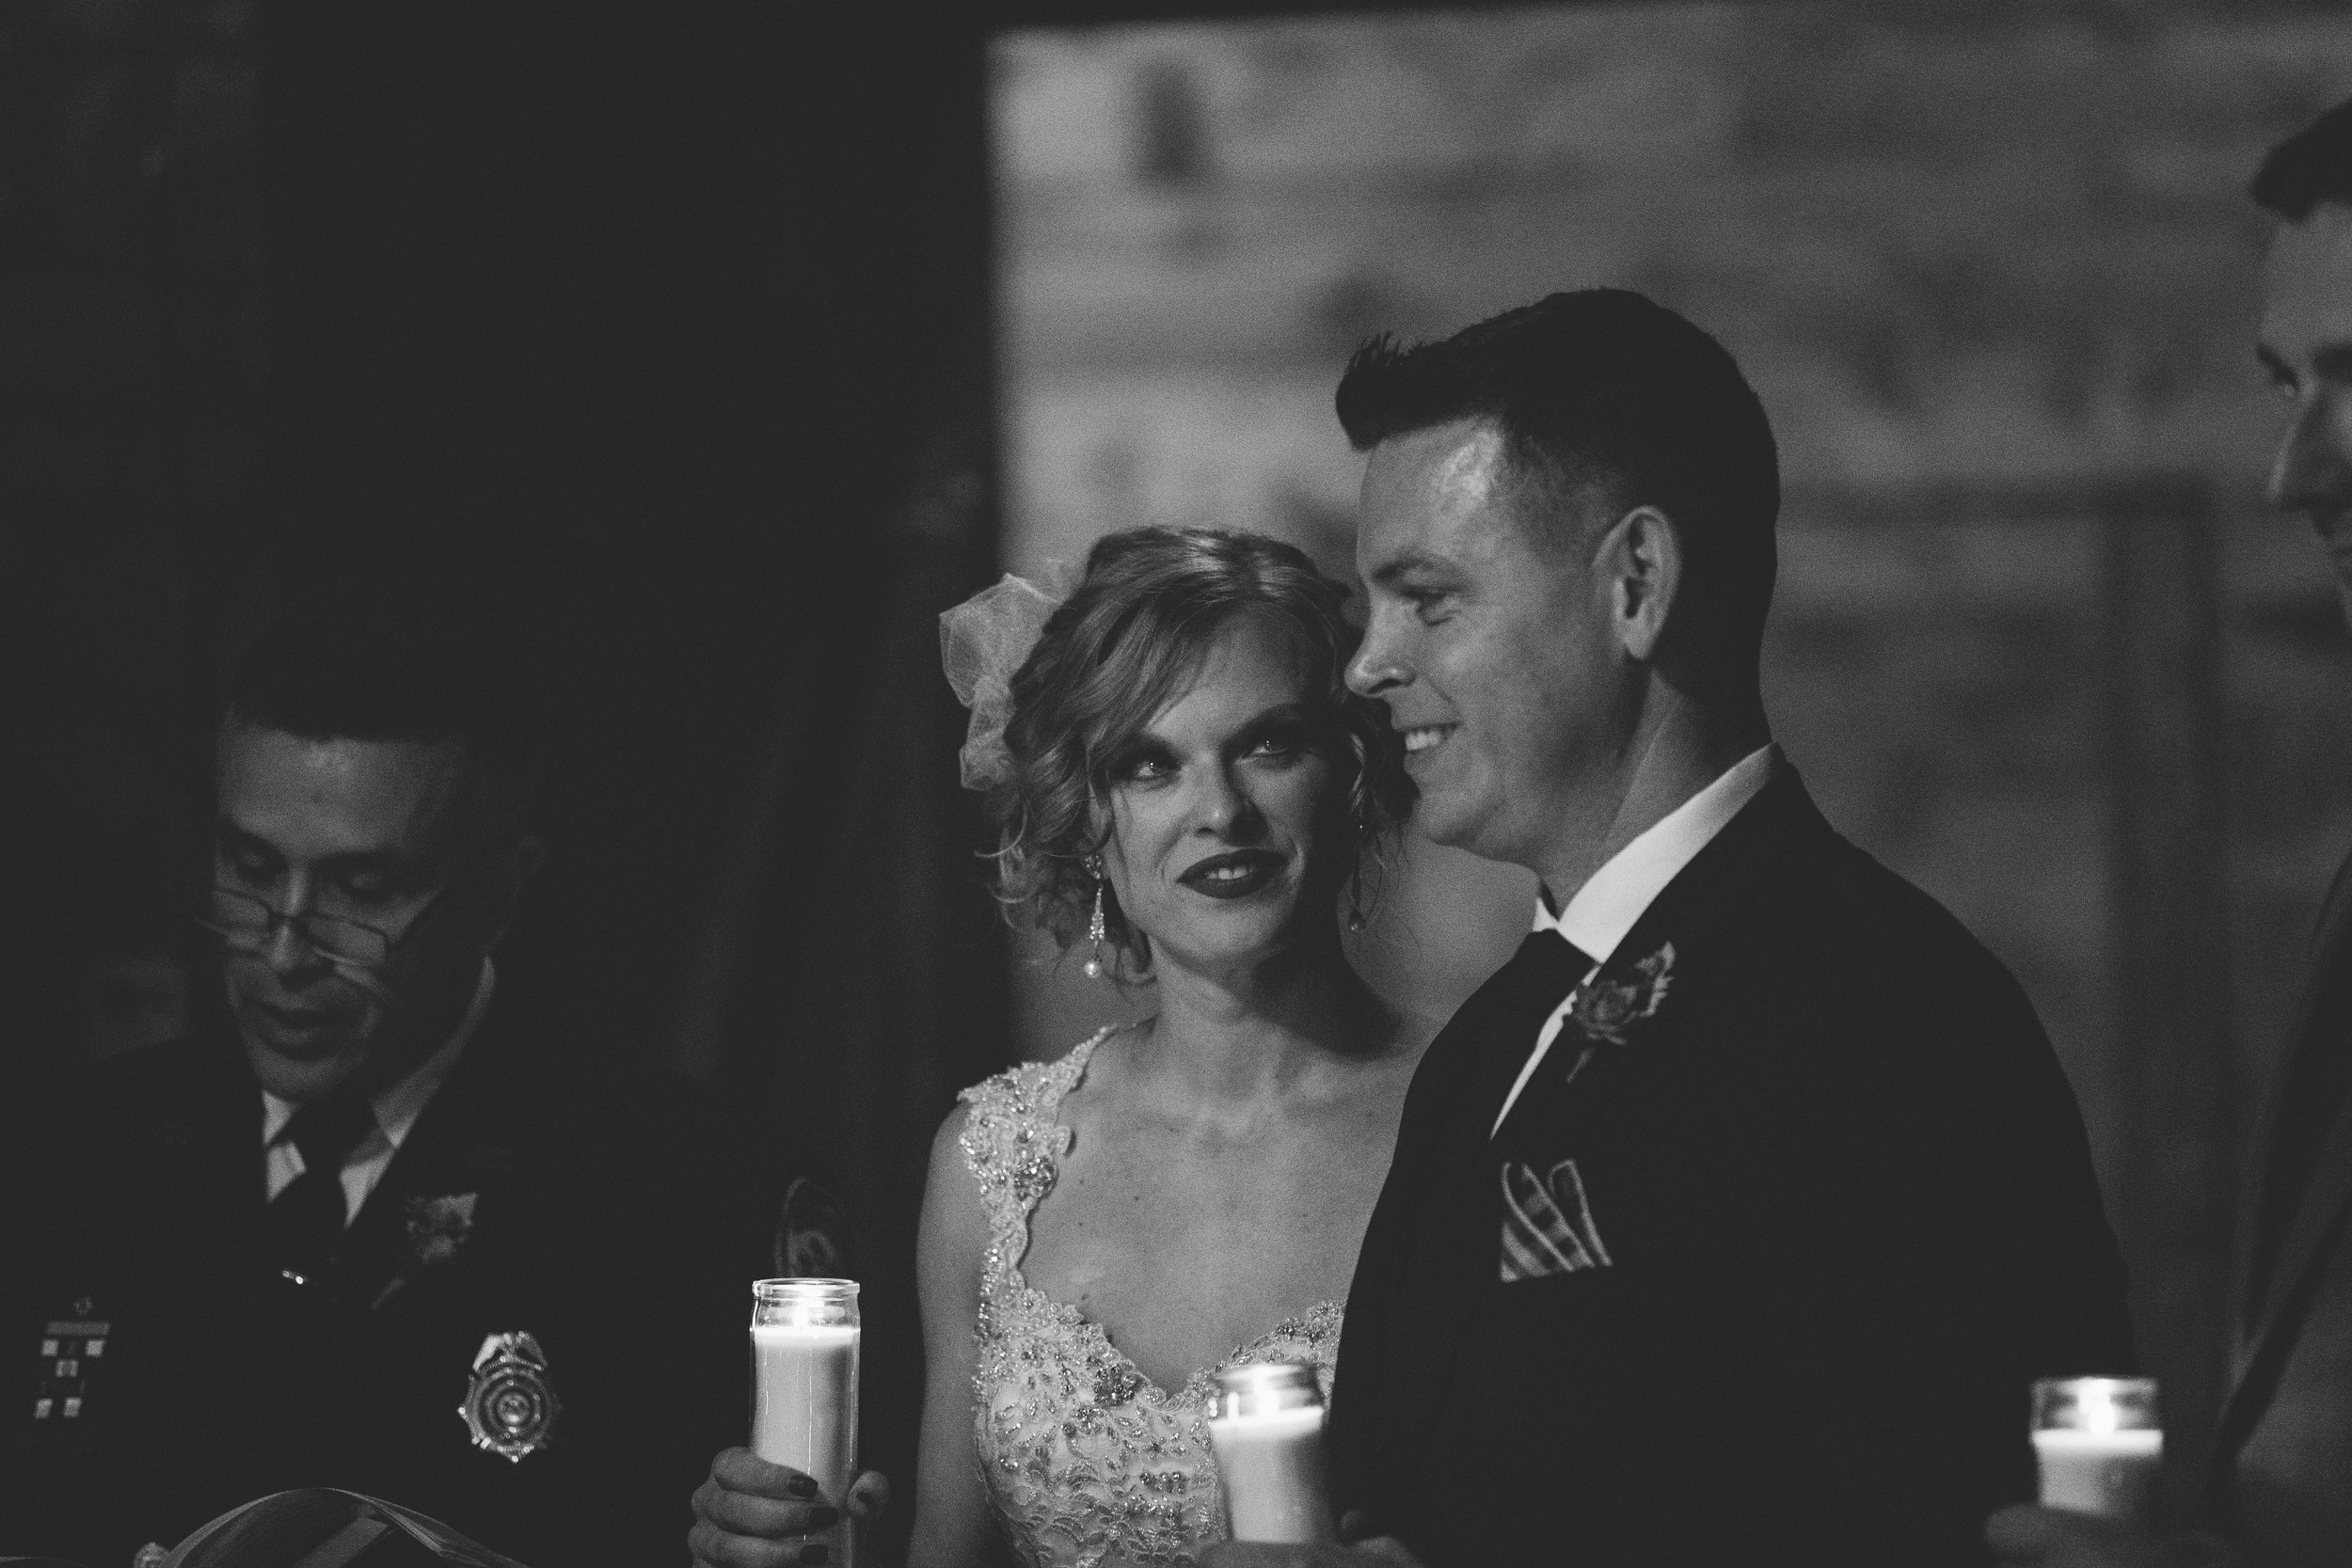 Candle light wedding ceremony at Mon Ami Winery.